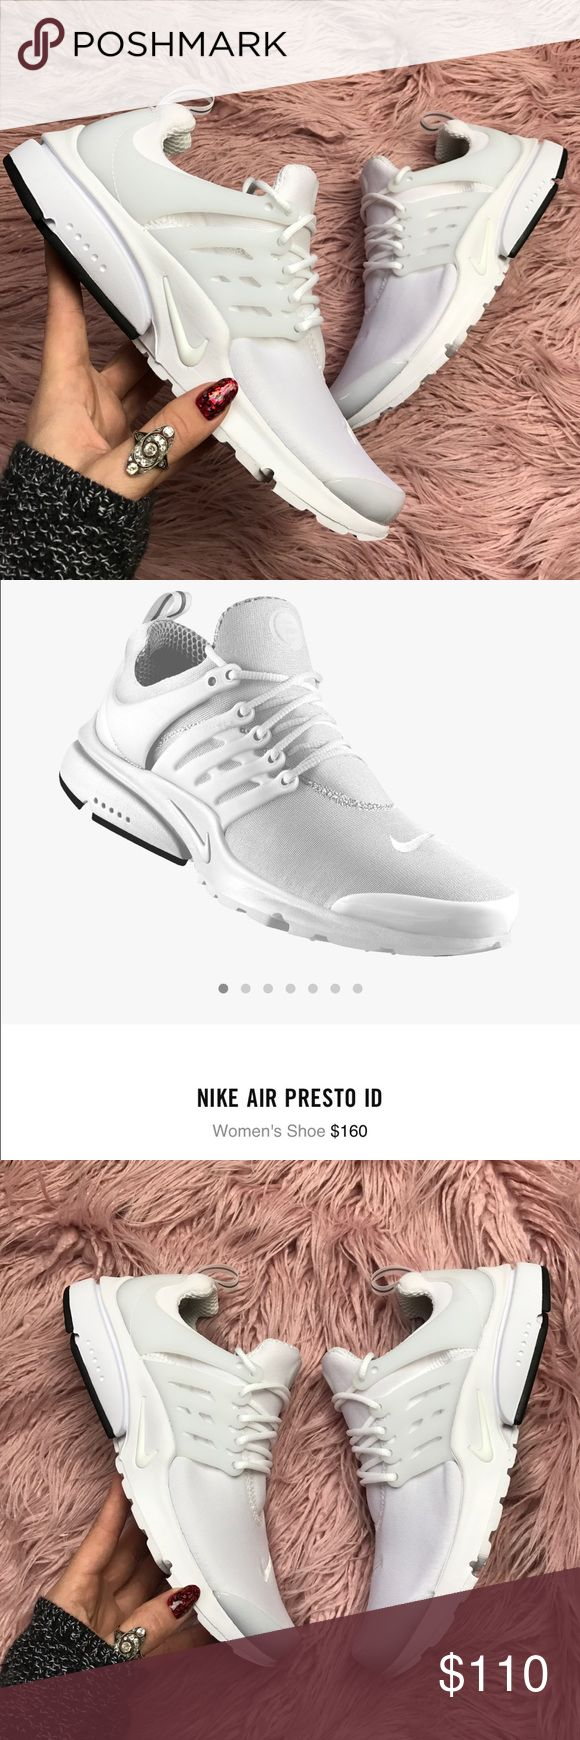 At Nike ID Presto all white Brand new no box,custom made!price is firm! Dynamic mesh upper that stretches with your foot Molded midfoot cage offers lightweight support Full-length Phylon midsole and Air-Sole heel unit provide soft, lightweight cushioning Duralon outsole with reinforced rubber at the heel for durable traction Vertical and horizontal flex grooves give you flexibility in all directions Nike Shoes Athletic Shoes